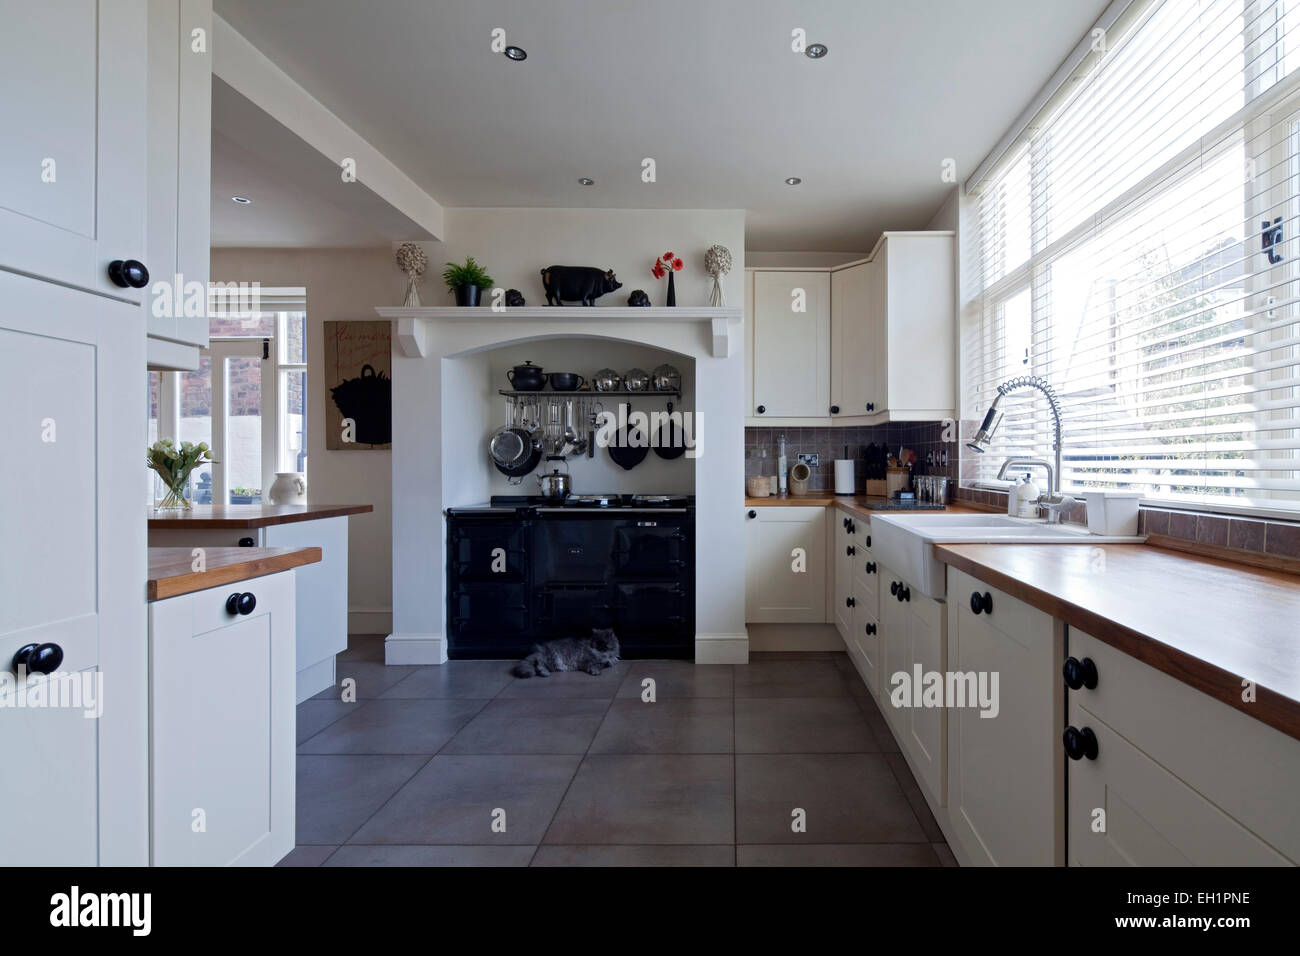 Country Interiors Kitchens Modern Imágenes De Stock & Country ...